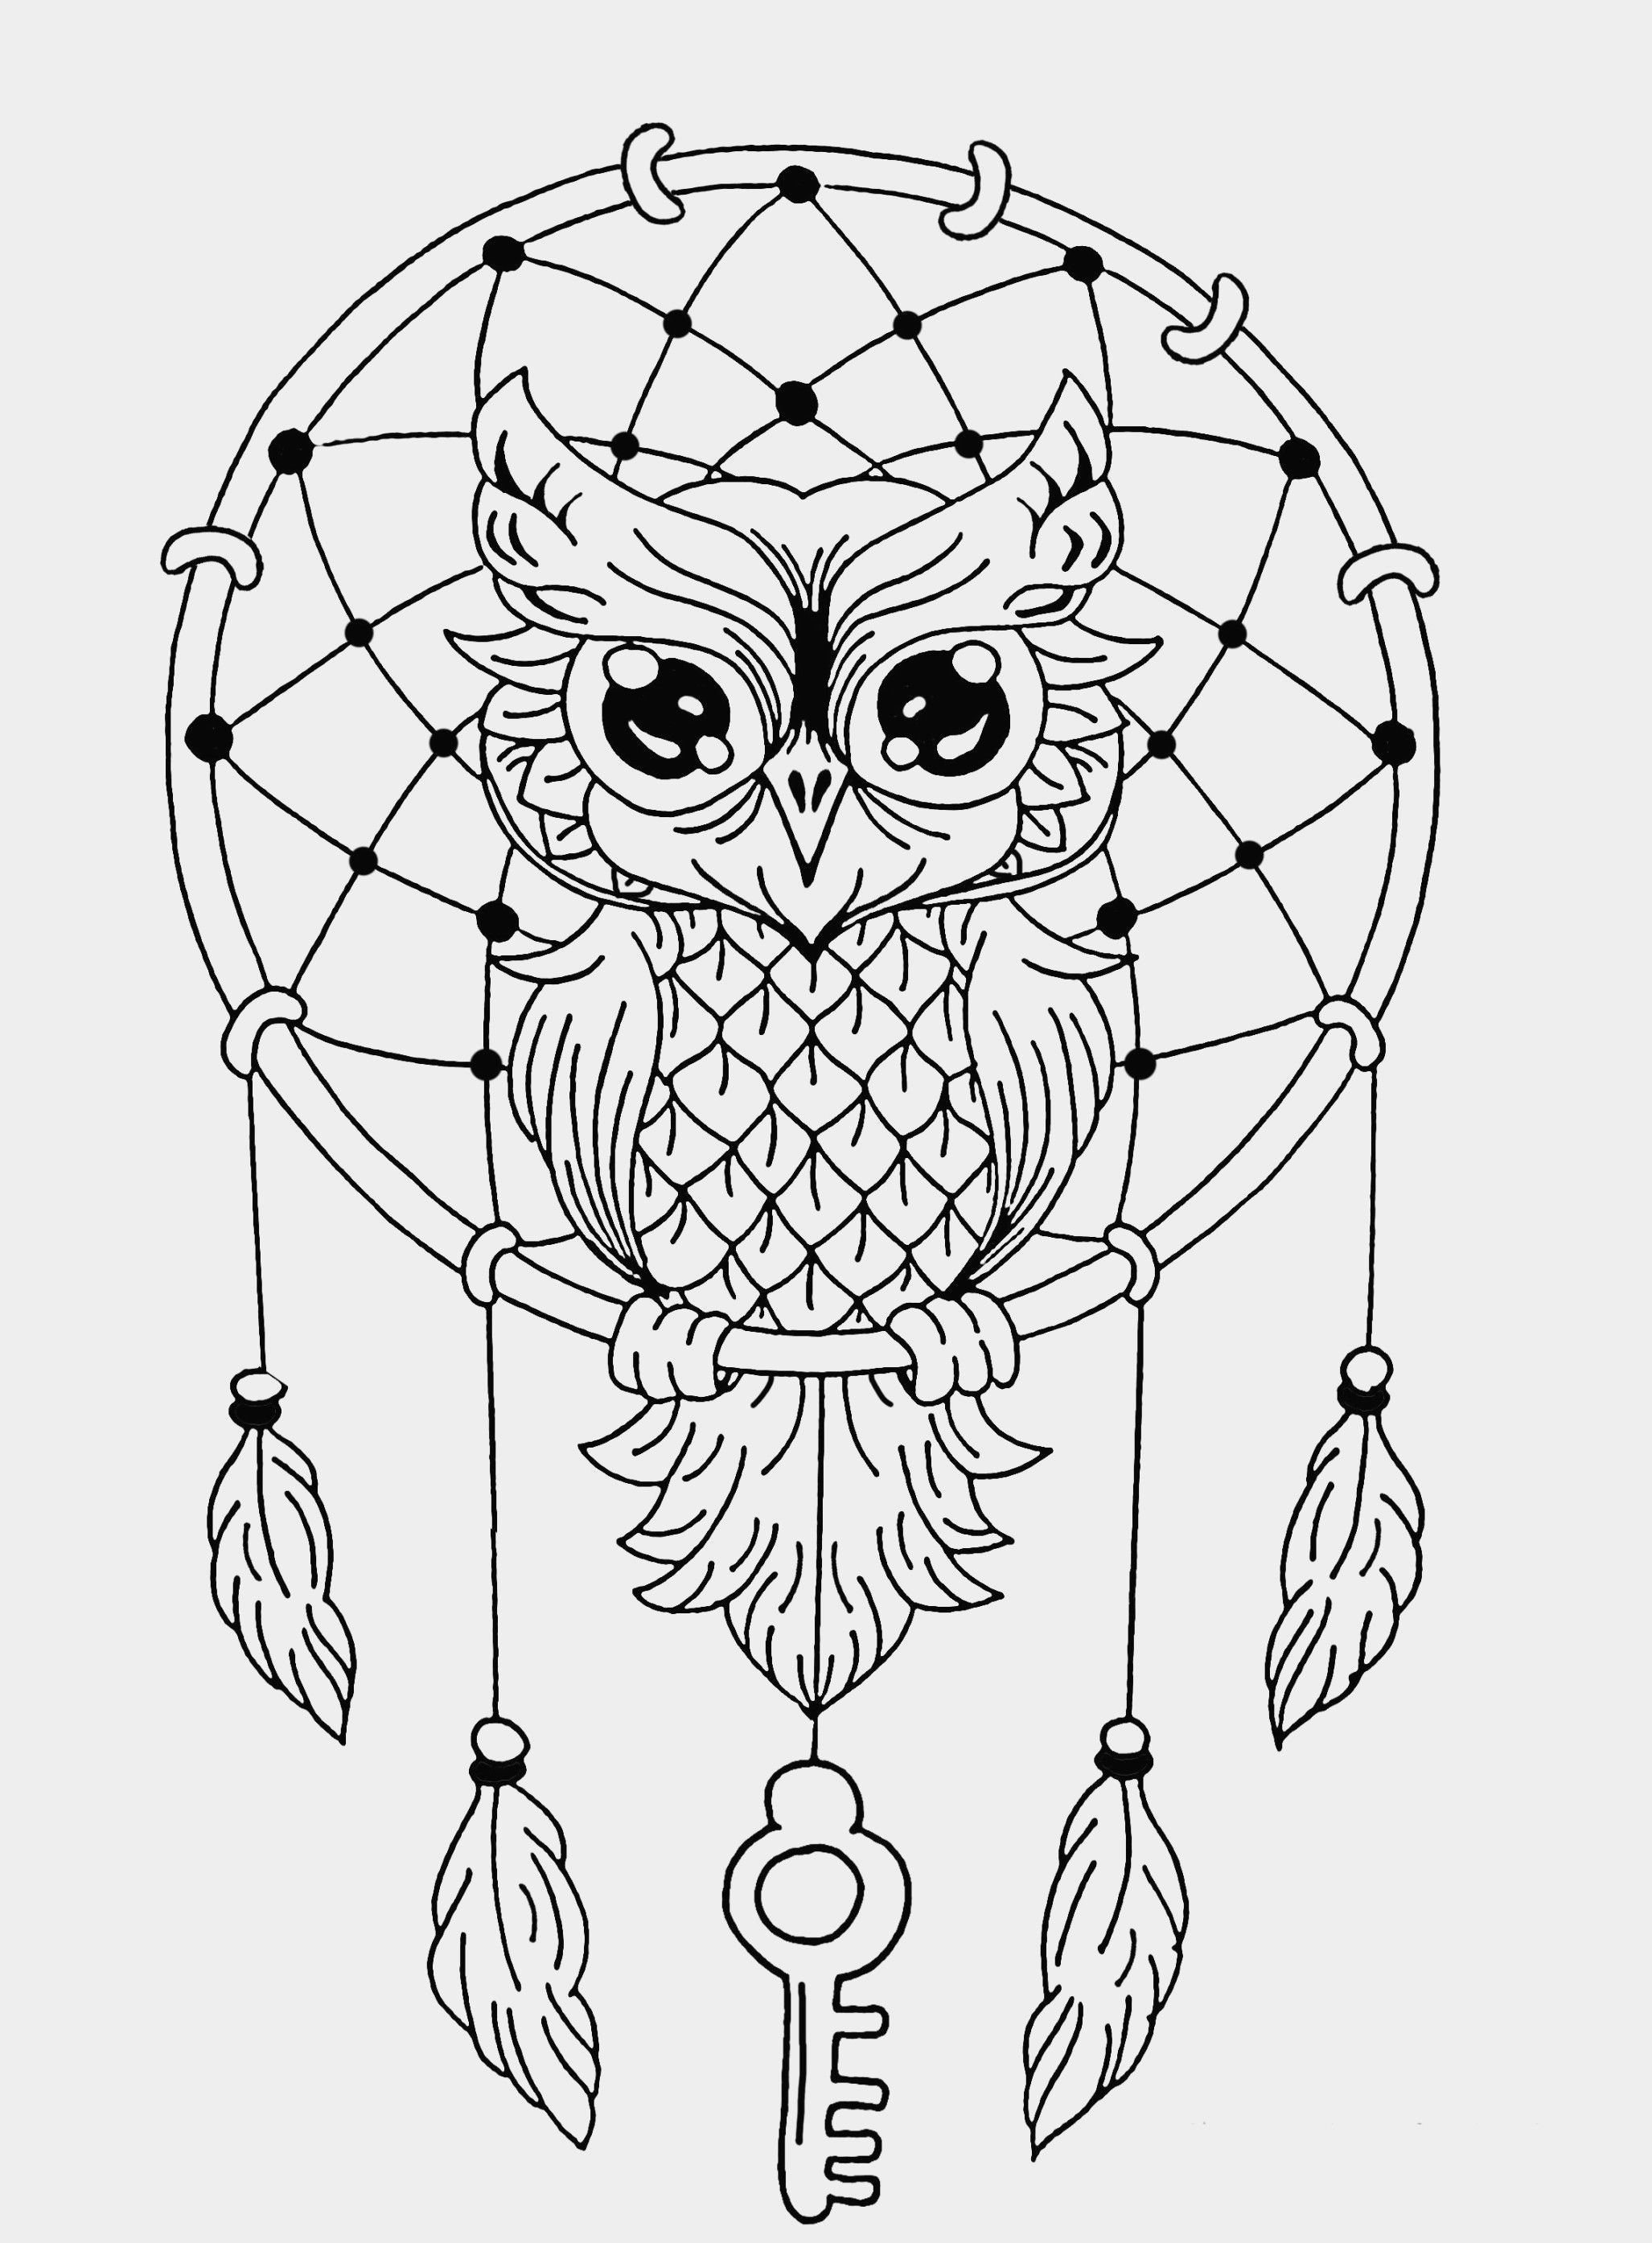 Animal Mandala Coloring Pages Easy Inspirational Mandala Easy Dreamcatcher Owl Of Animal Owl Coloring Pages Animal Coloring Pages Dream Catcher Coloring Pages